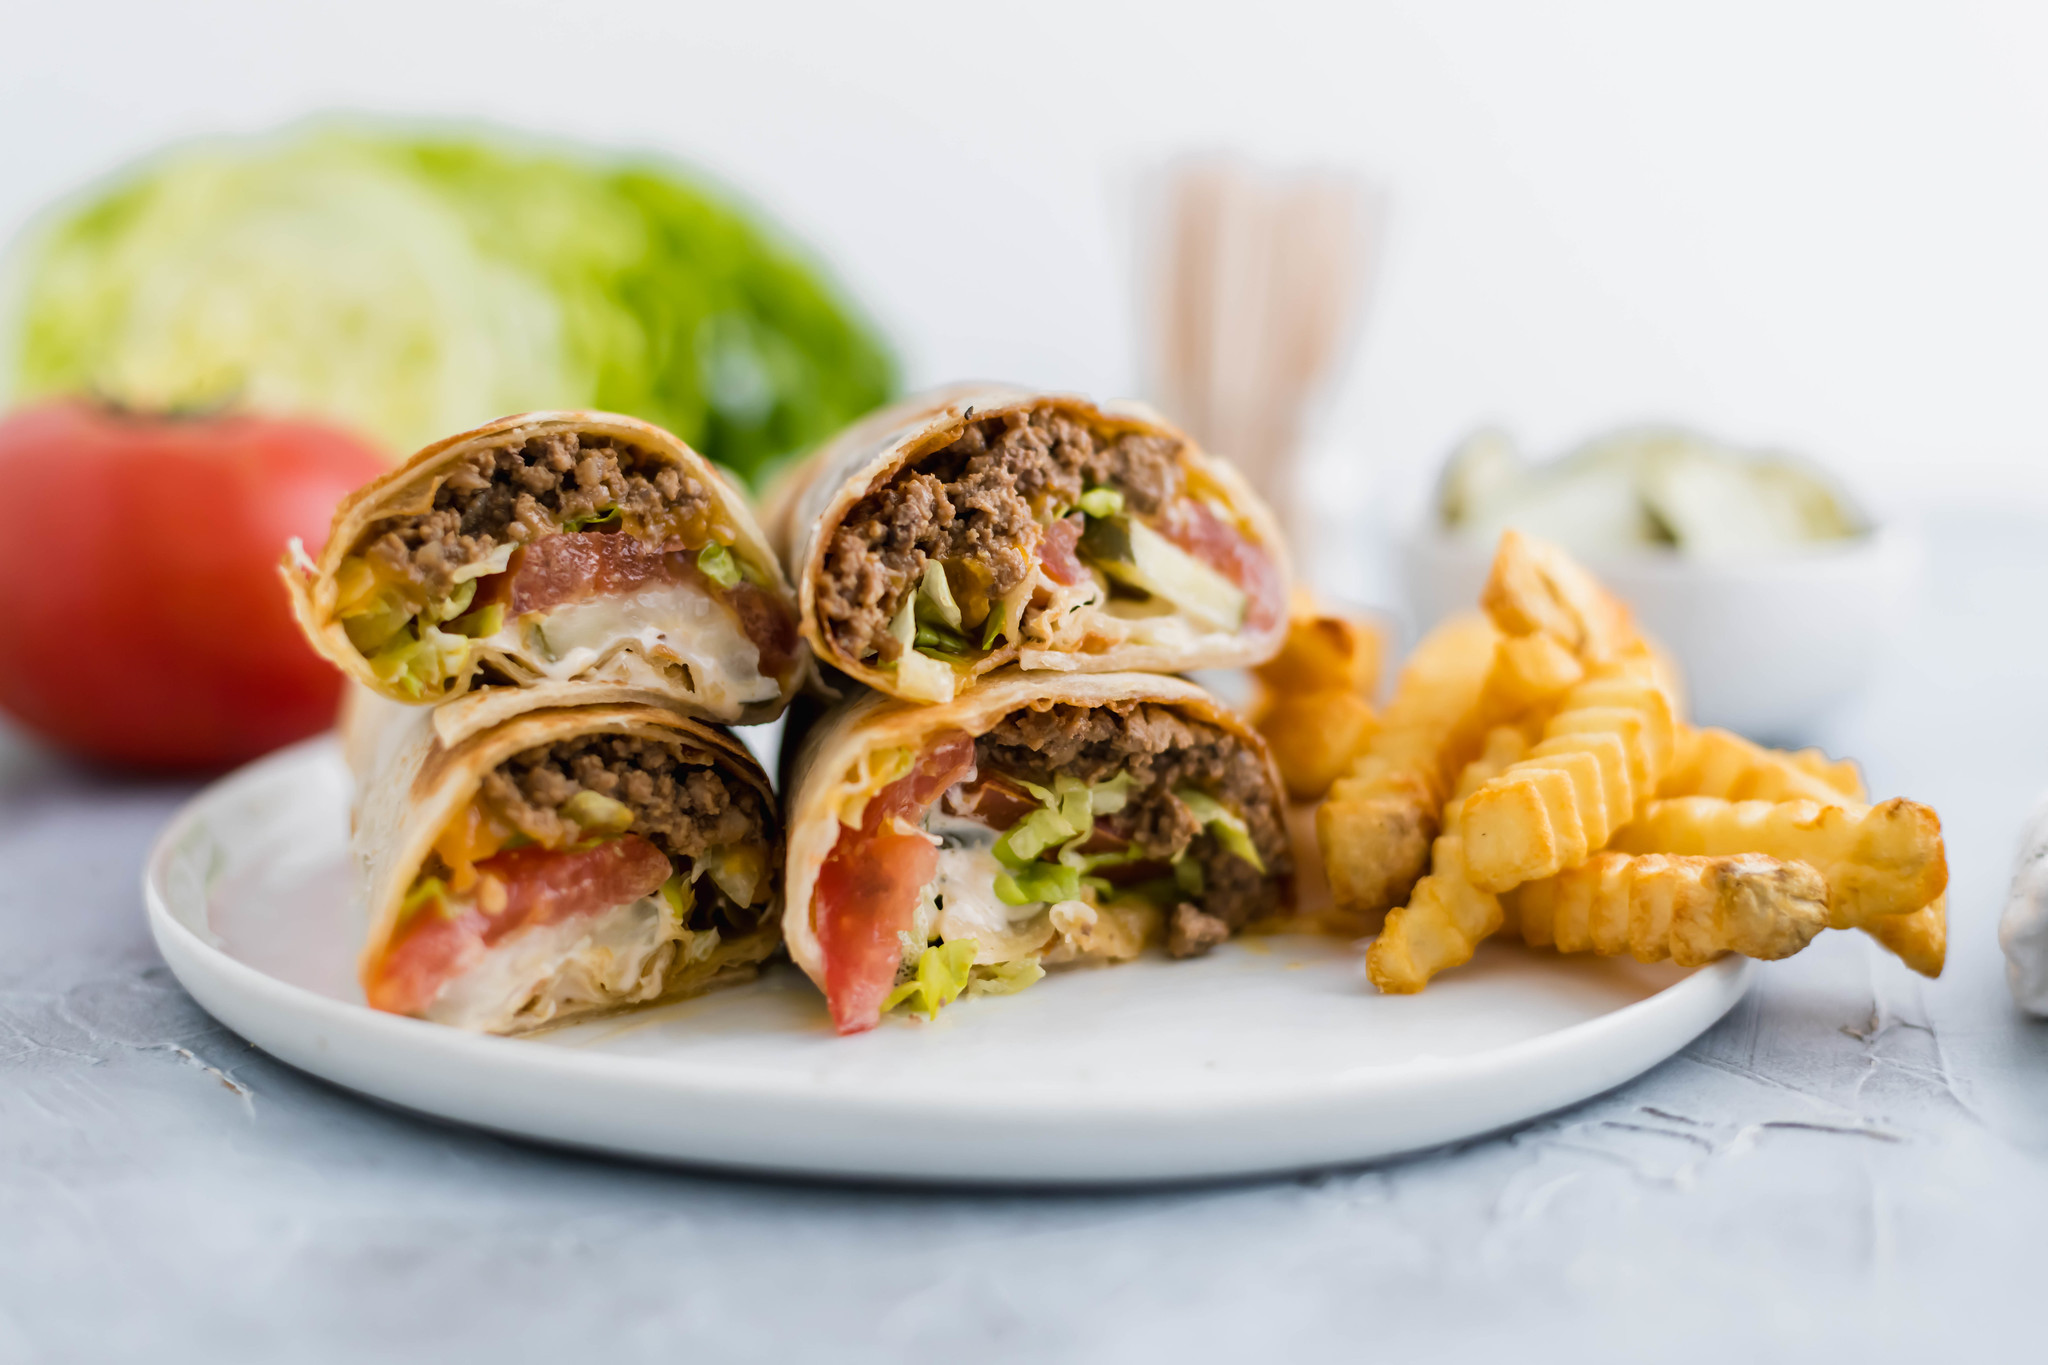 A fun twist on the classic cheeseburger, these Cheeseburger Wraps feature ground beef, cheese, burger sauce, lettuce, tomato and pickles all wrapped up in a flour tortilla.